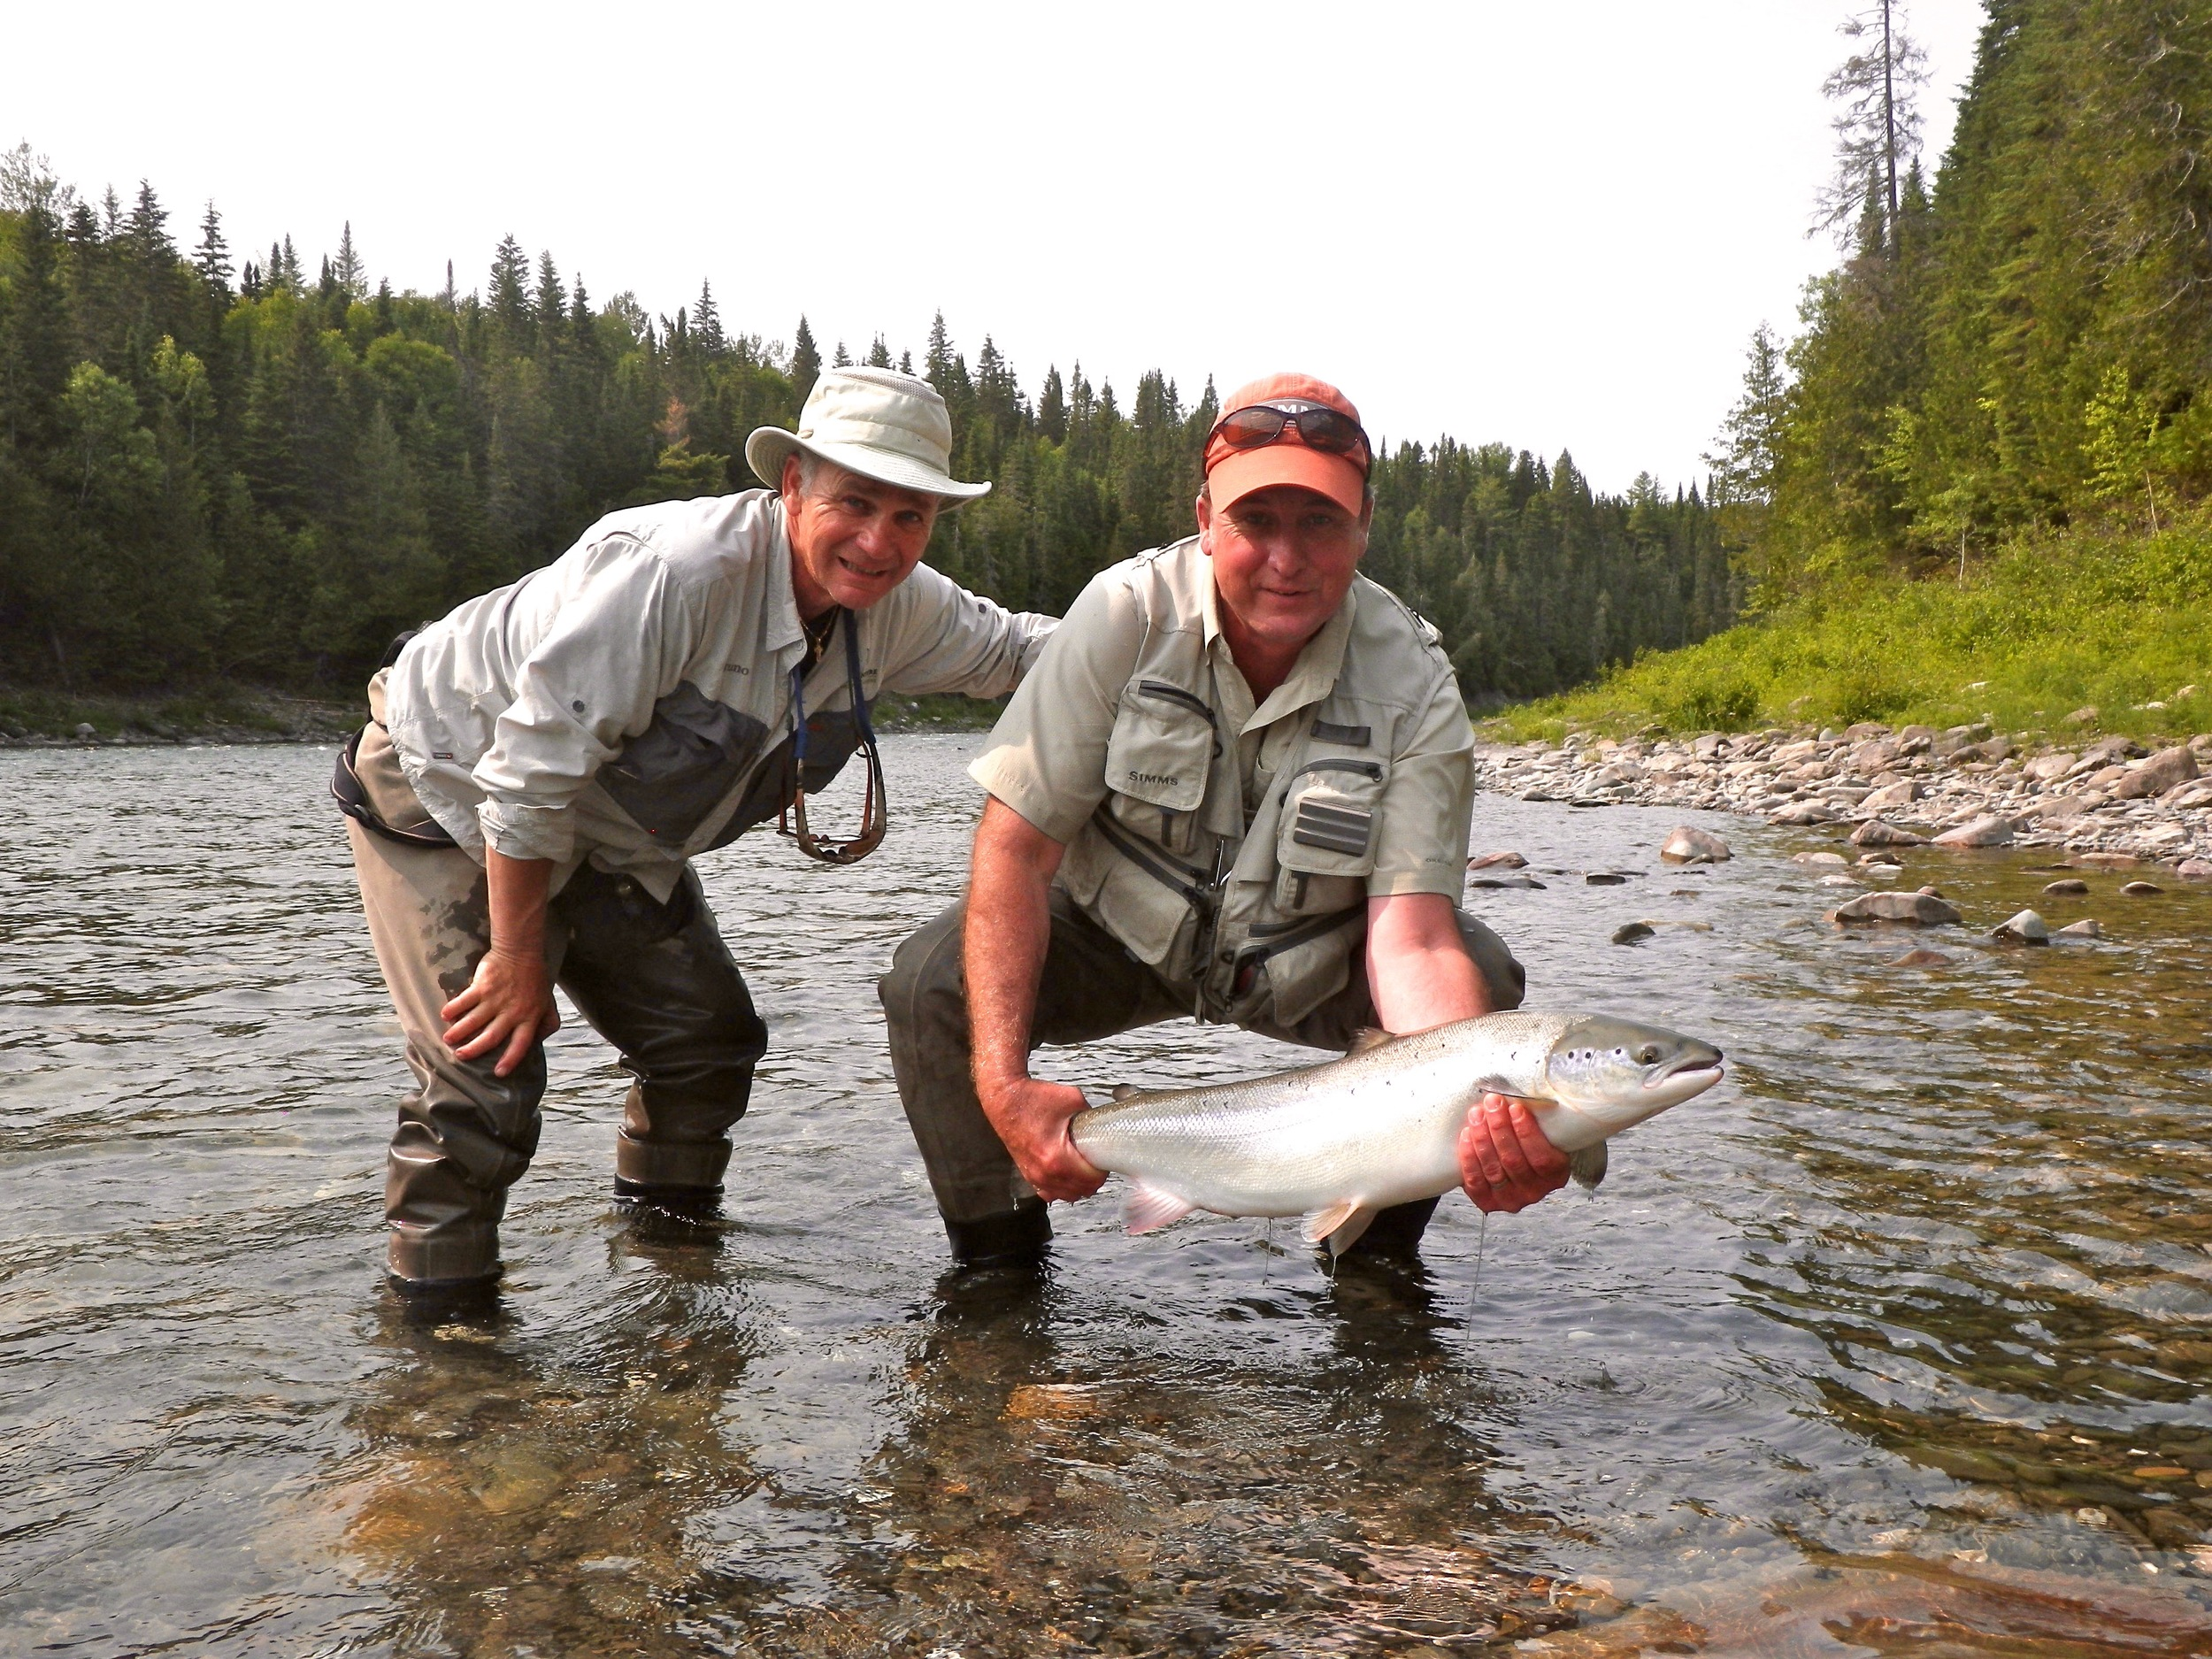 Camp Bonaventure guide Bruno Lepage with angler Mike Buzas, nice fish Mike!